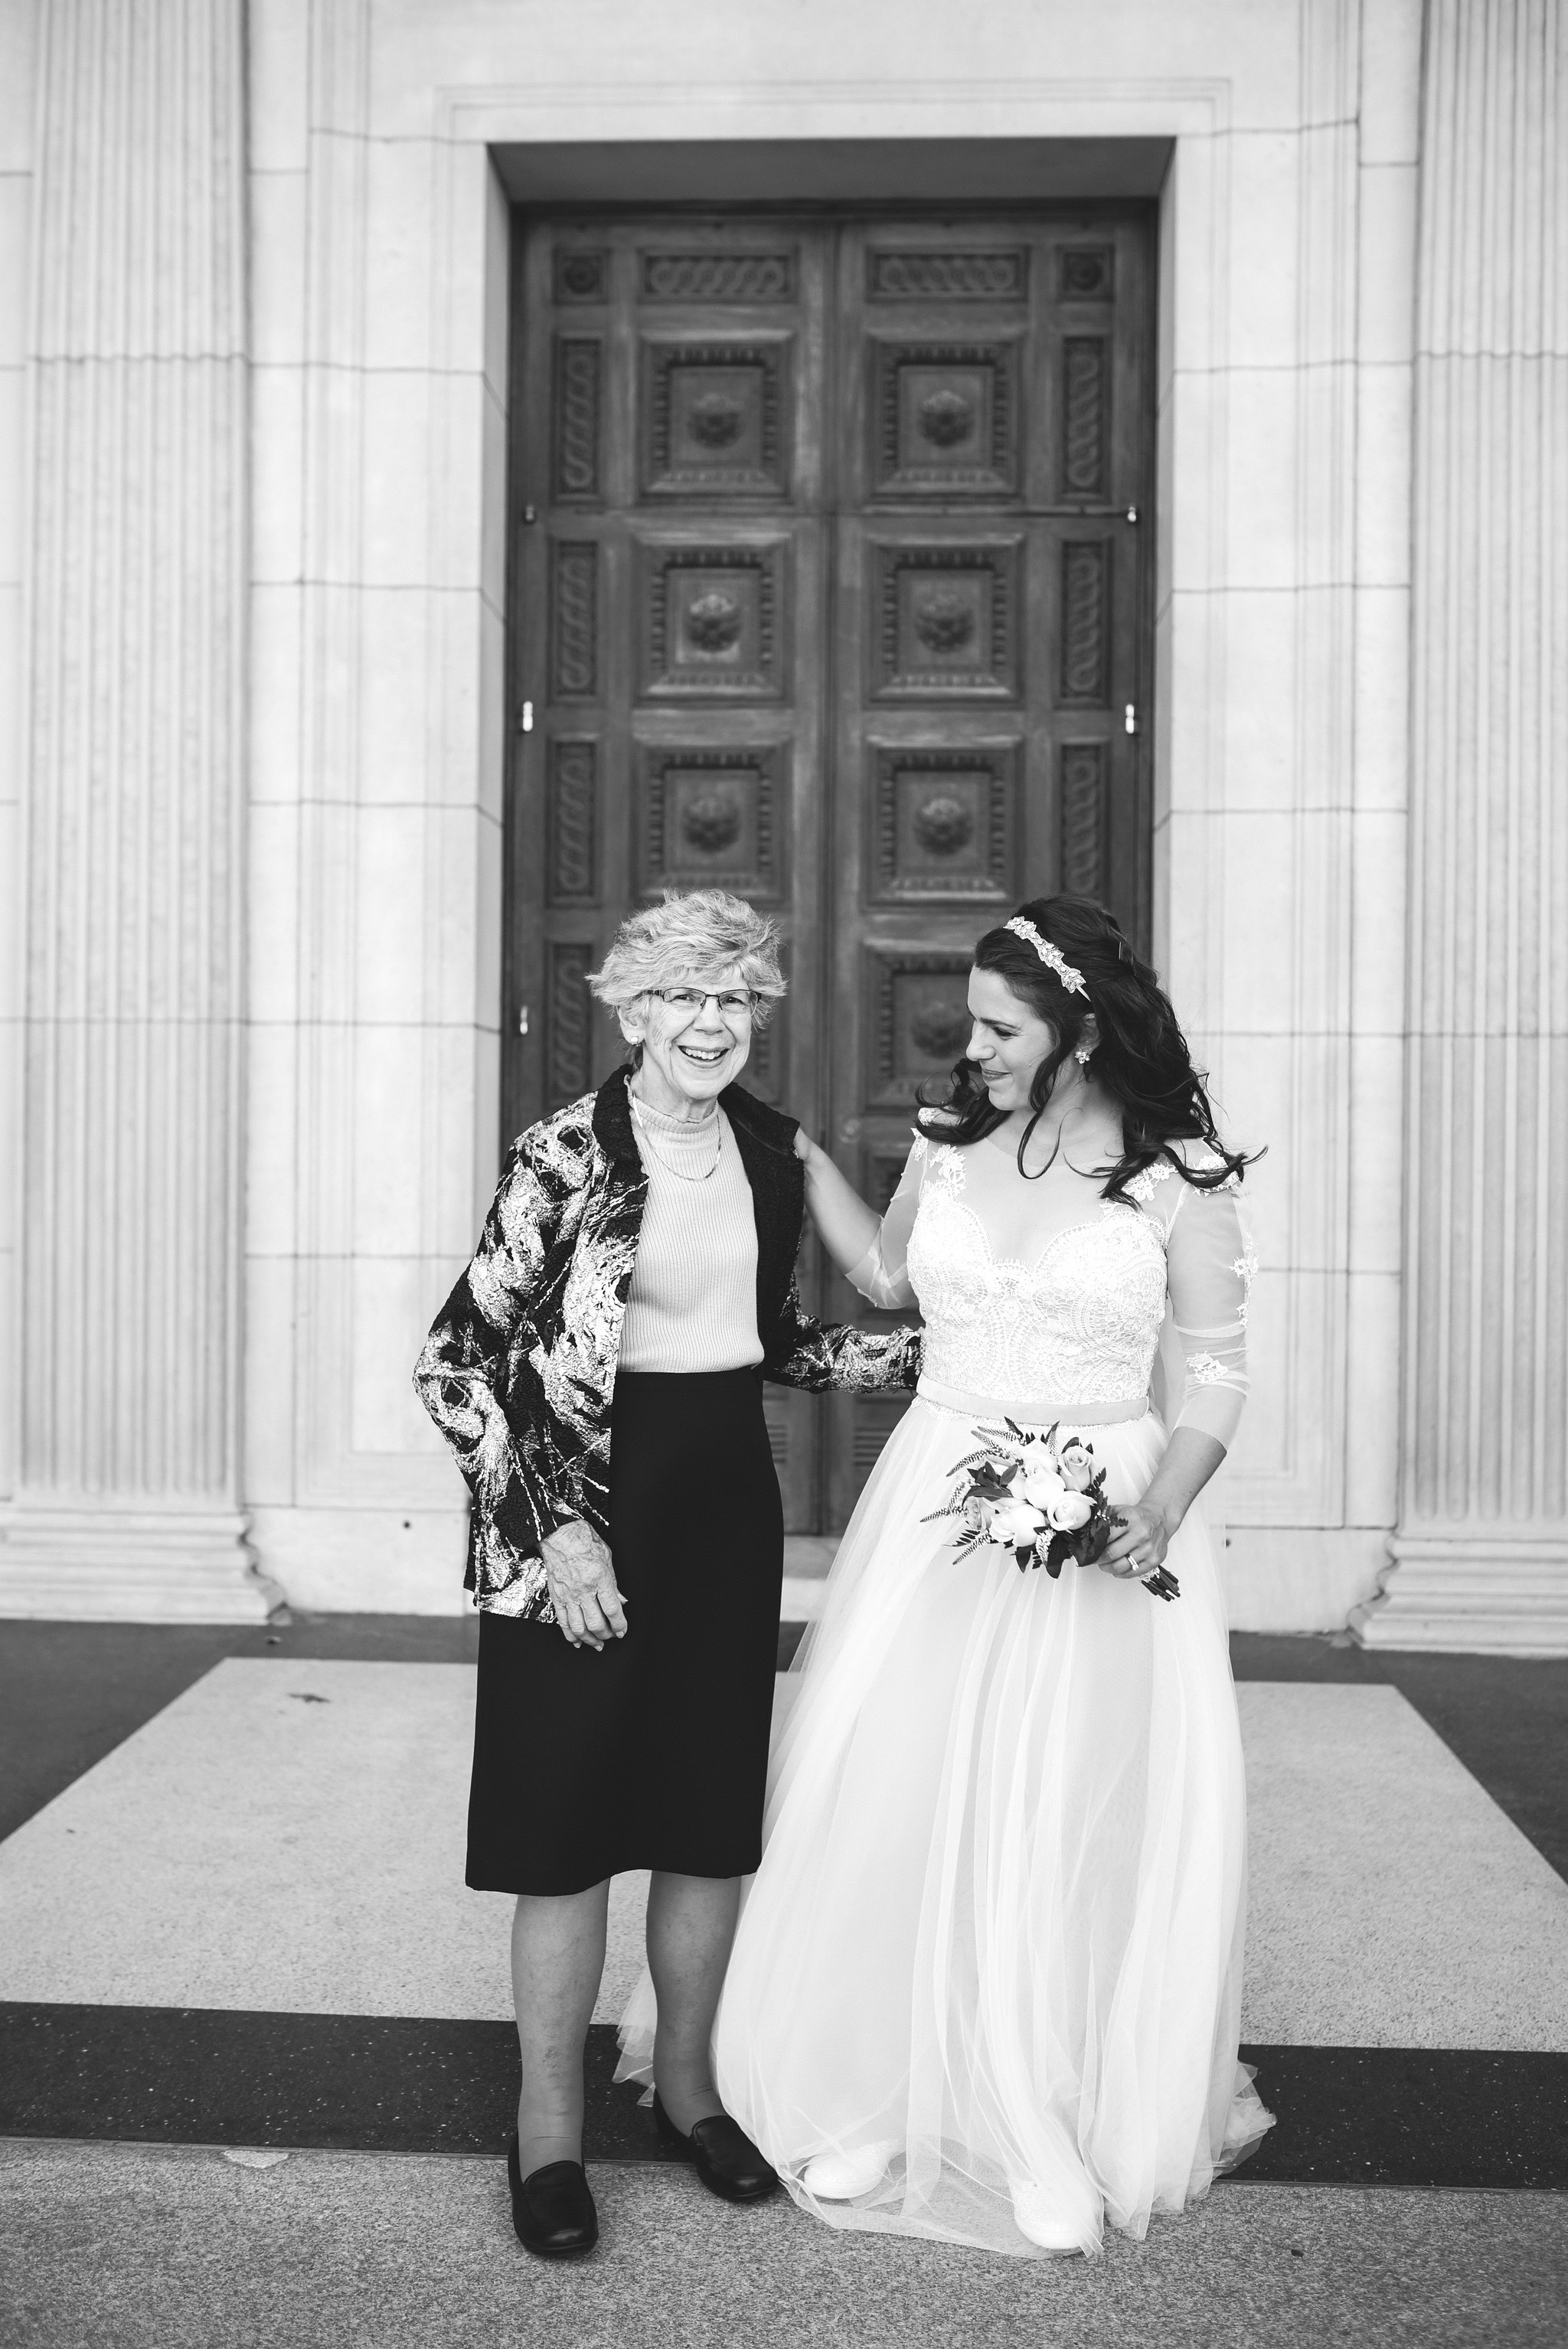 Baltimore, Canton, Church Wedding, Modern, Outdoors, Maryland Wedding Photographer, Romantic, Classic, St. Casimir Church, Black and White Photo, Portrait of bride with family outside of church, lace wedding dress